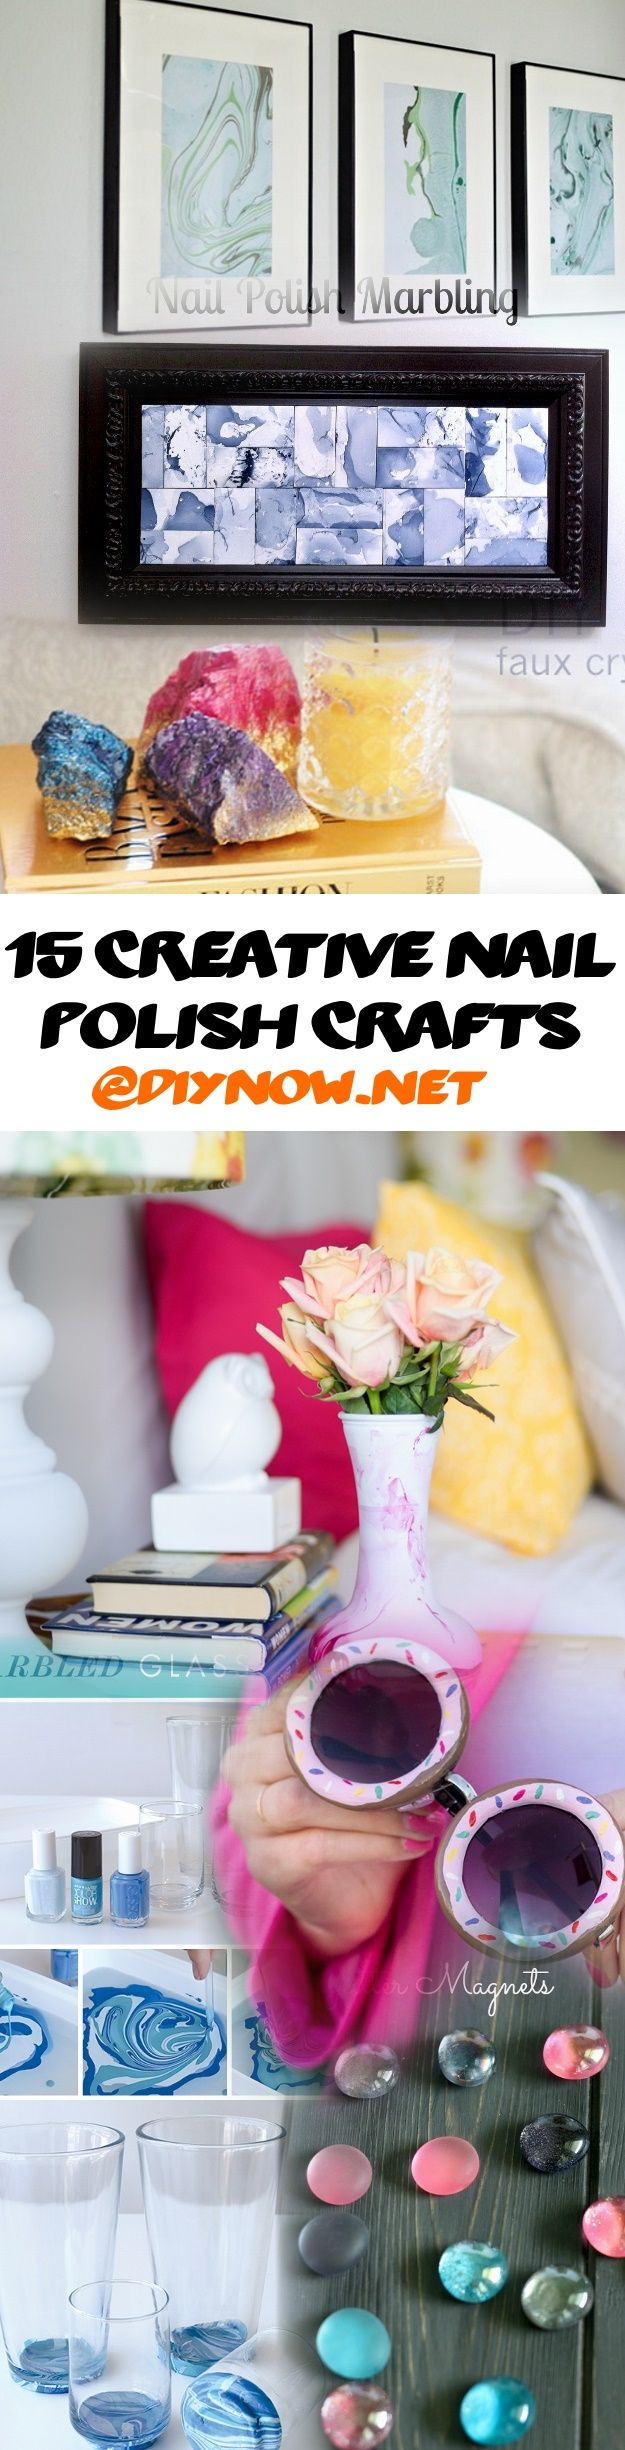 15 Creative Nail Polish Crafts